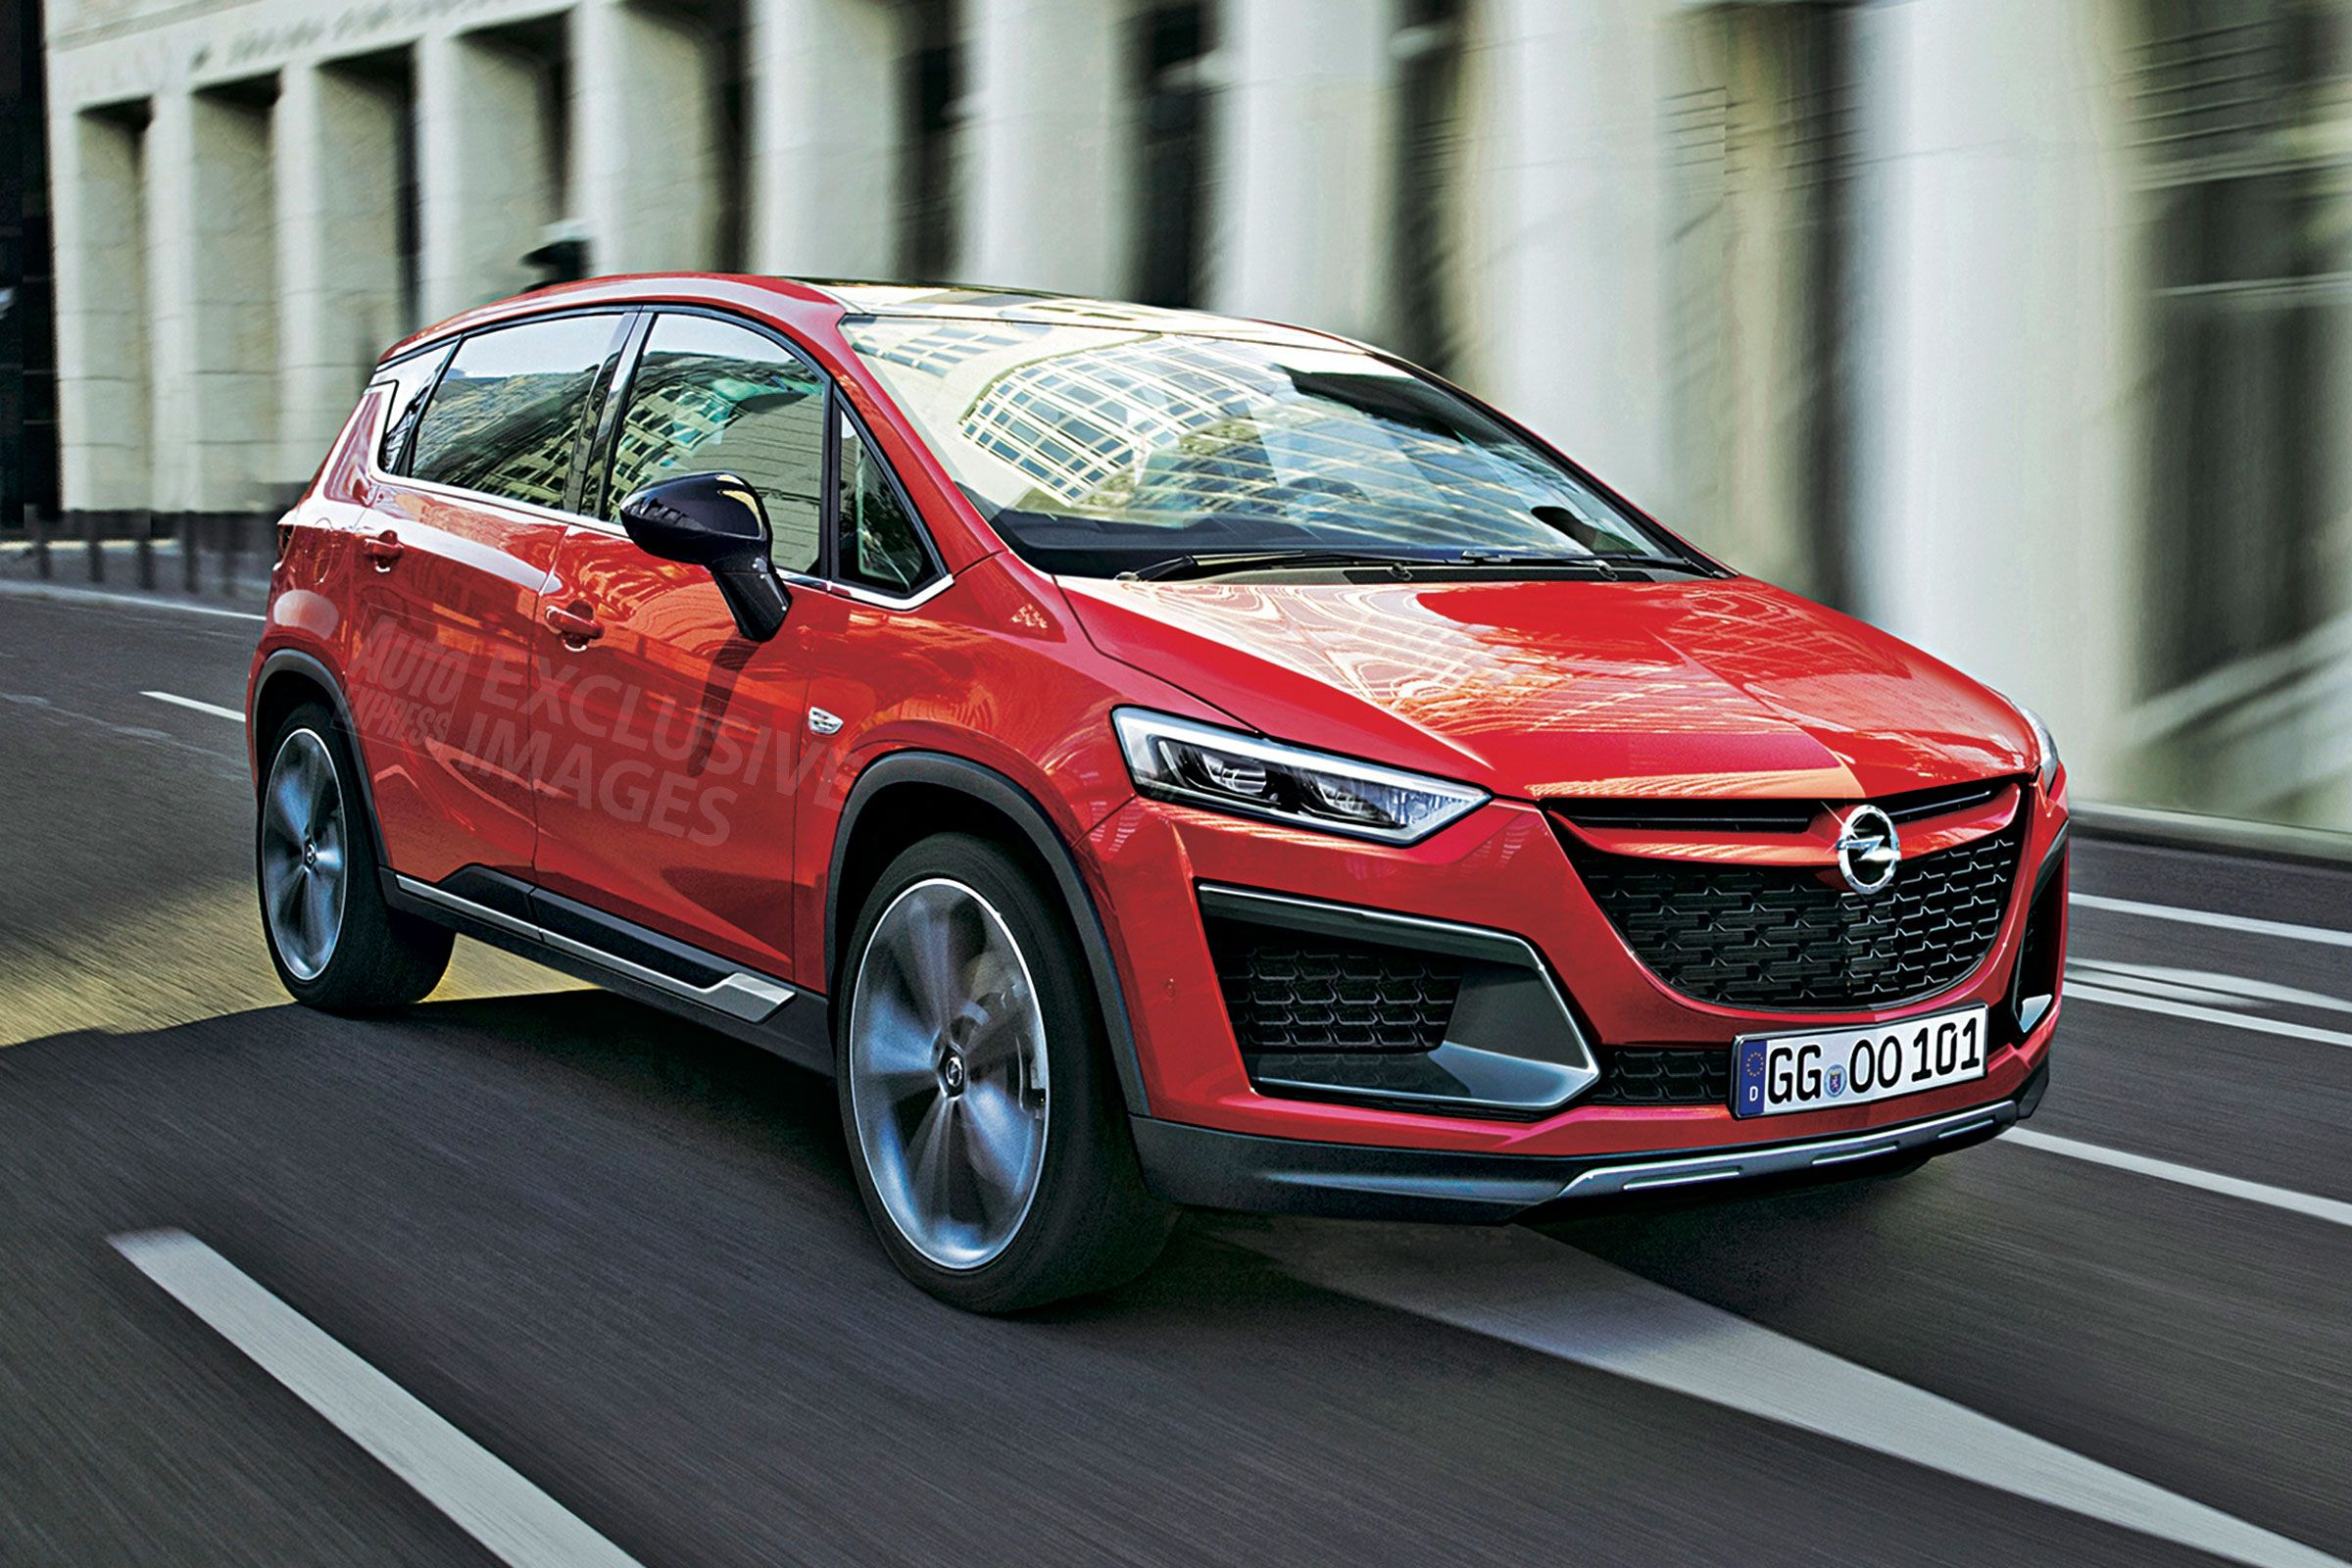 2016 opel meriva redesign and specs httpcarstim2016 2016 opel meriva redesign and specs httpcarstim2016 opel meriva redesign and specs automotive pinterest opel meriva and cars sciox Image collections